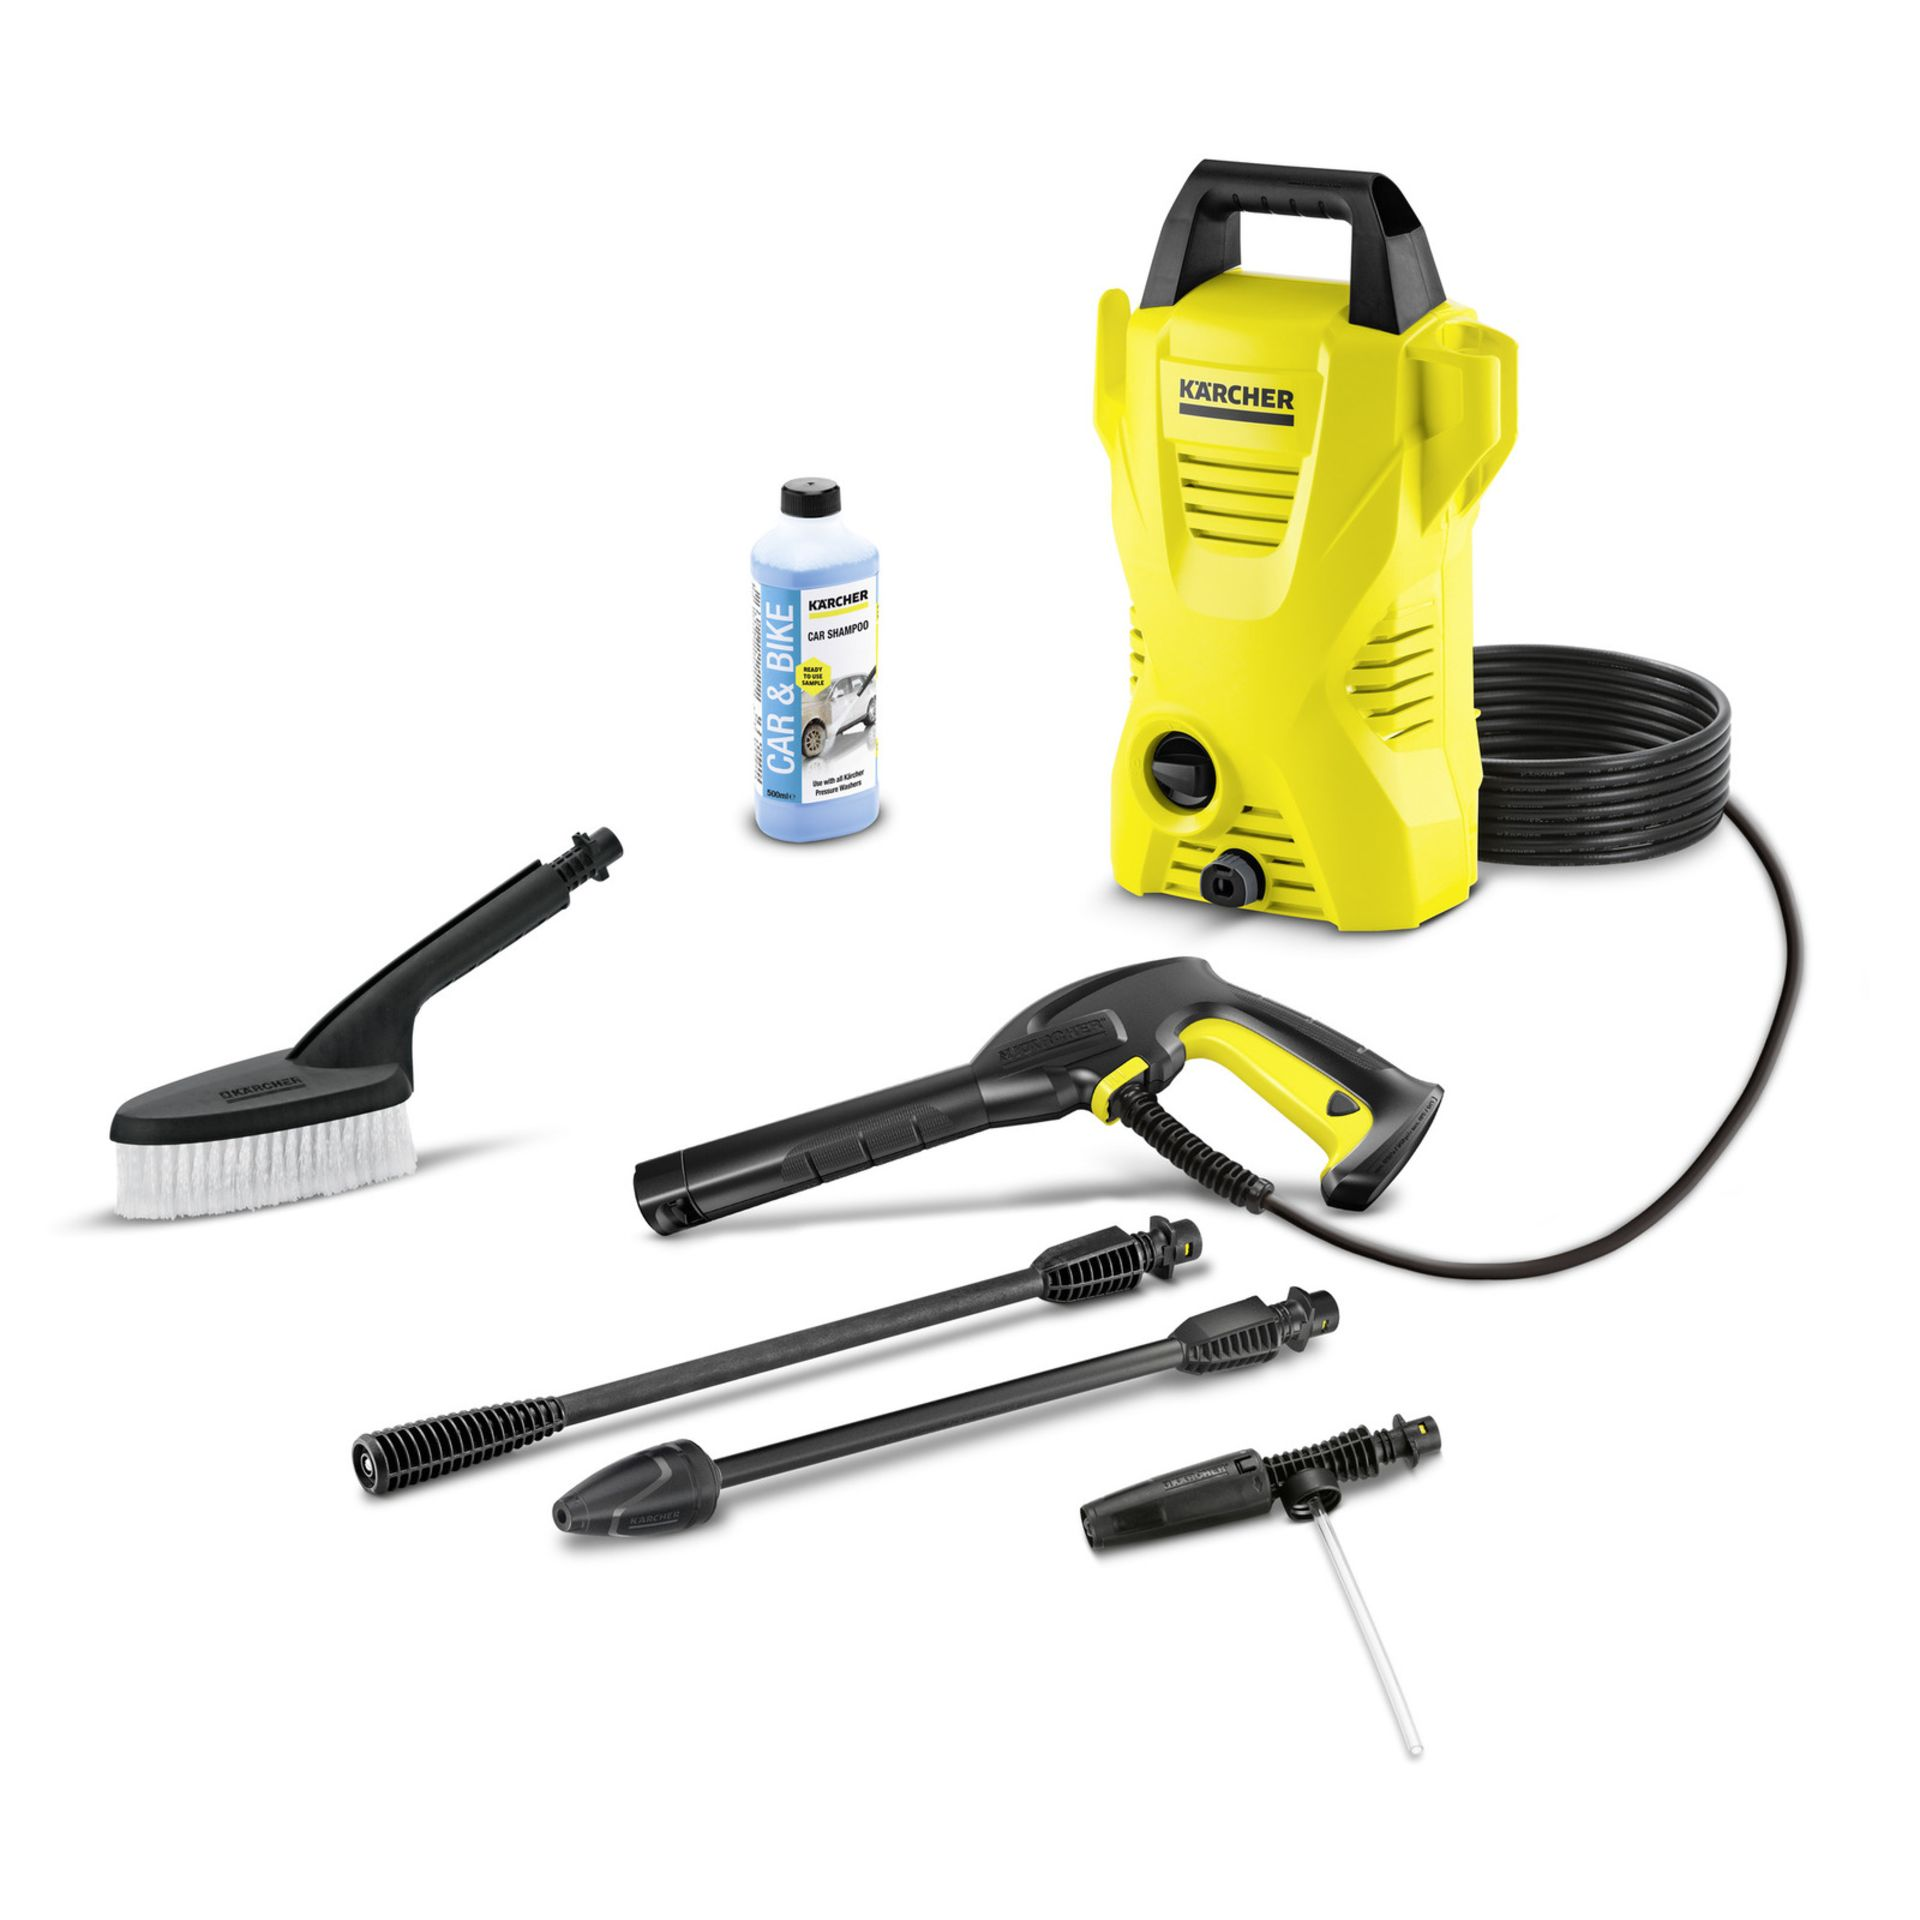 Lot 50052 - V Brand New Karcher K2 Compact Car High Pressure Cleaner With Wash Brush - Foam Nozzle & Car Shampoo